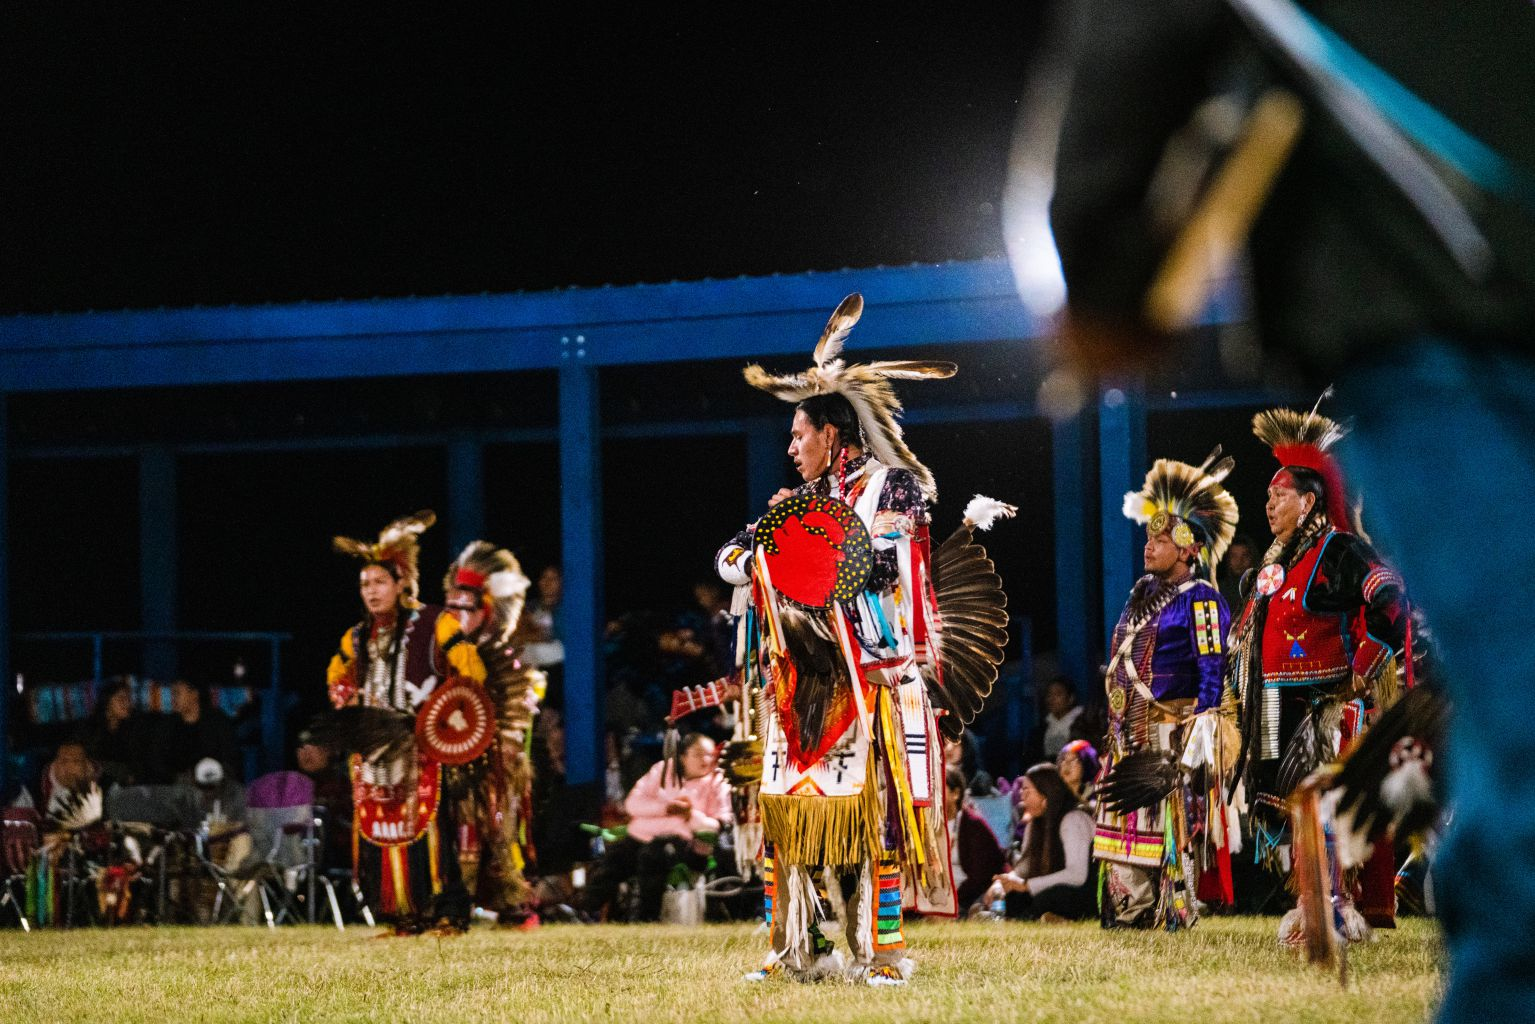 Native american pow wow dancers at night